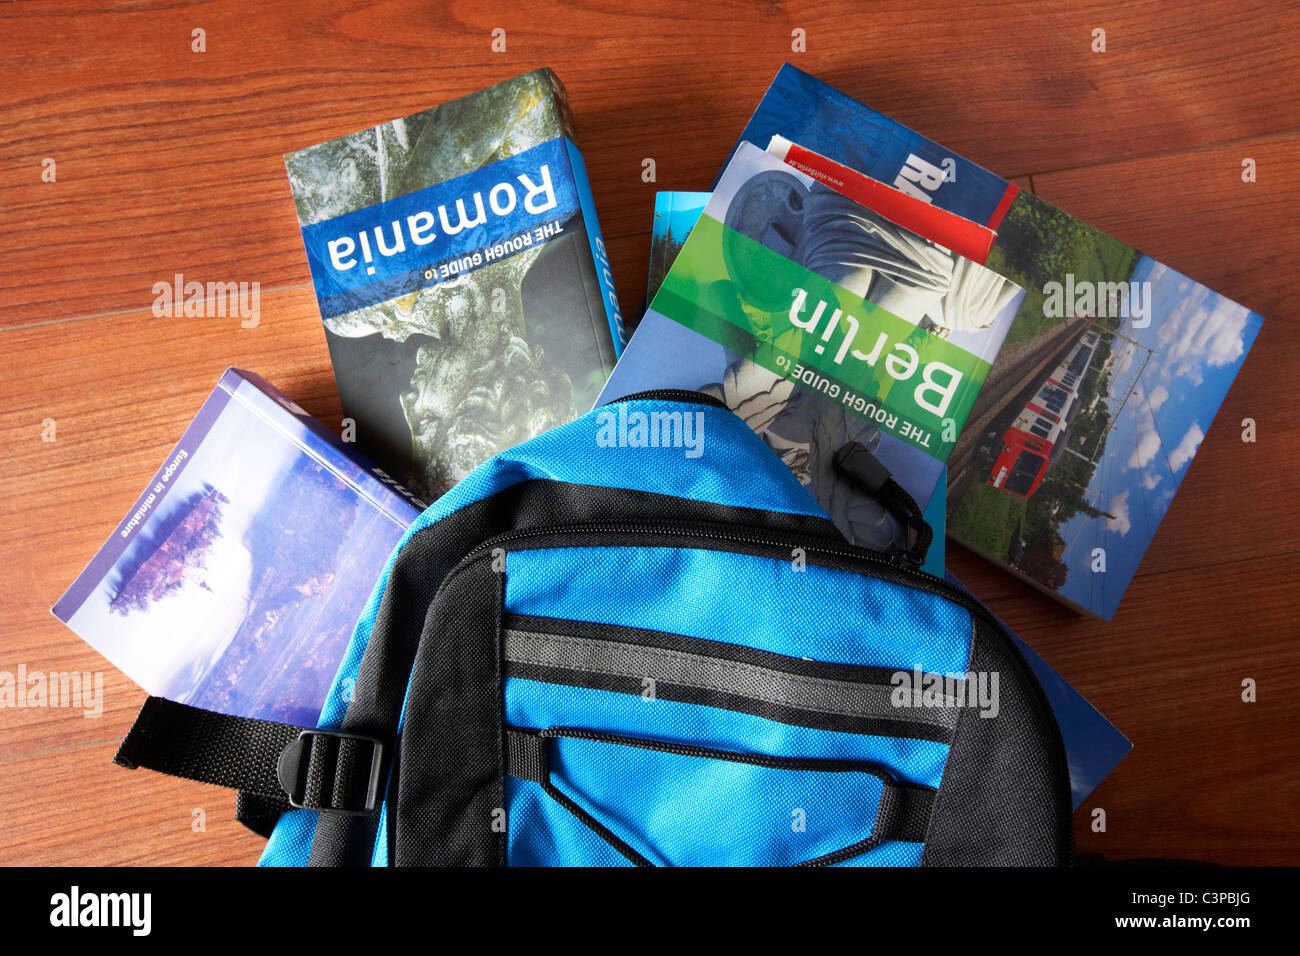 various travel guide books falling out of a backpack - Stock Image